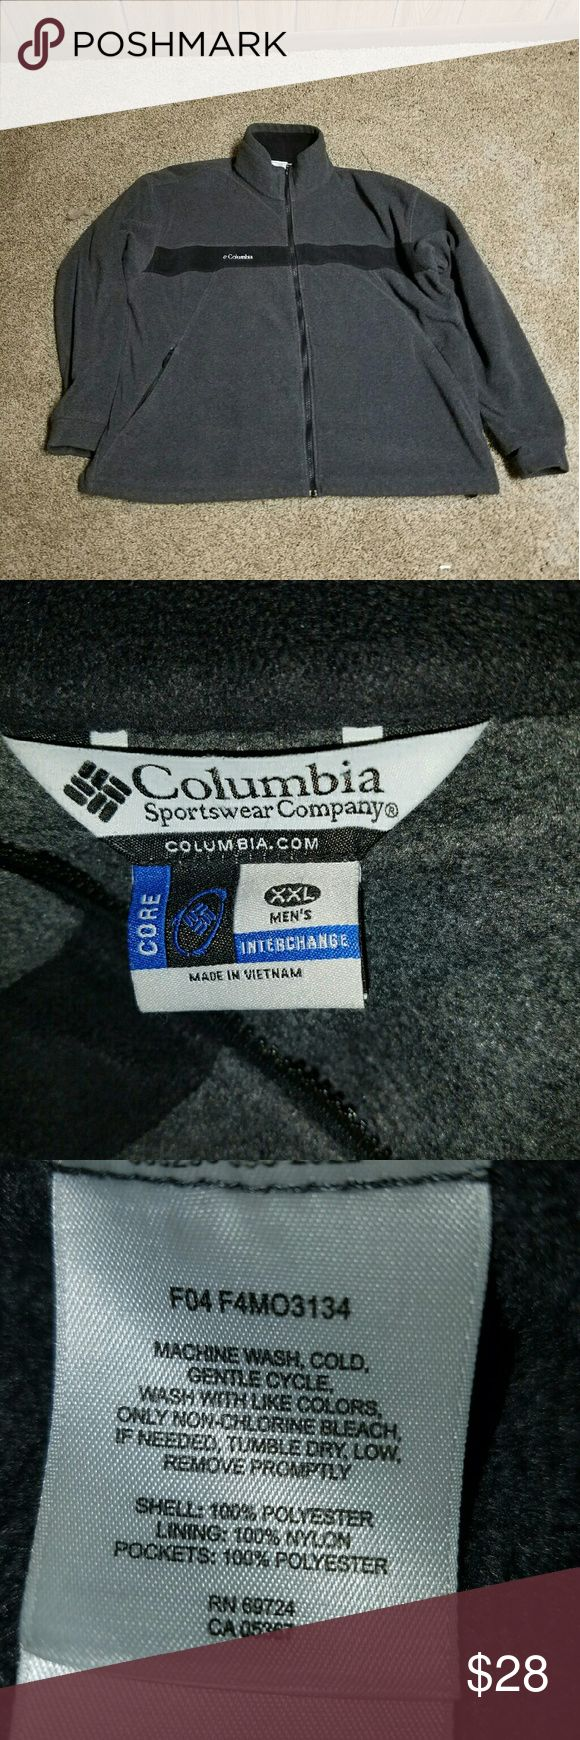 """Mens Columbia jacket Mens Charcoal Grey with Black Chest Stripe and White   Stiched Columbia/logo XXL 2XL Full Zip Core Interchange Jacket with lower zip pockets and interior pouch pockets. Loose fit hem has lock tab core on each side for adjustable fit arm pit to arm pit 30"""" collar to hem 29 and 1/2"""" Columbia  Jackets & Coats Lightweight & Shirt Jackets"""